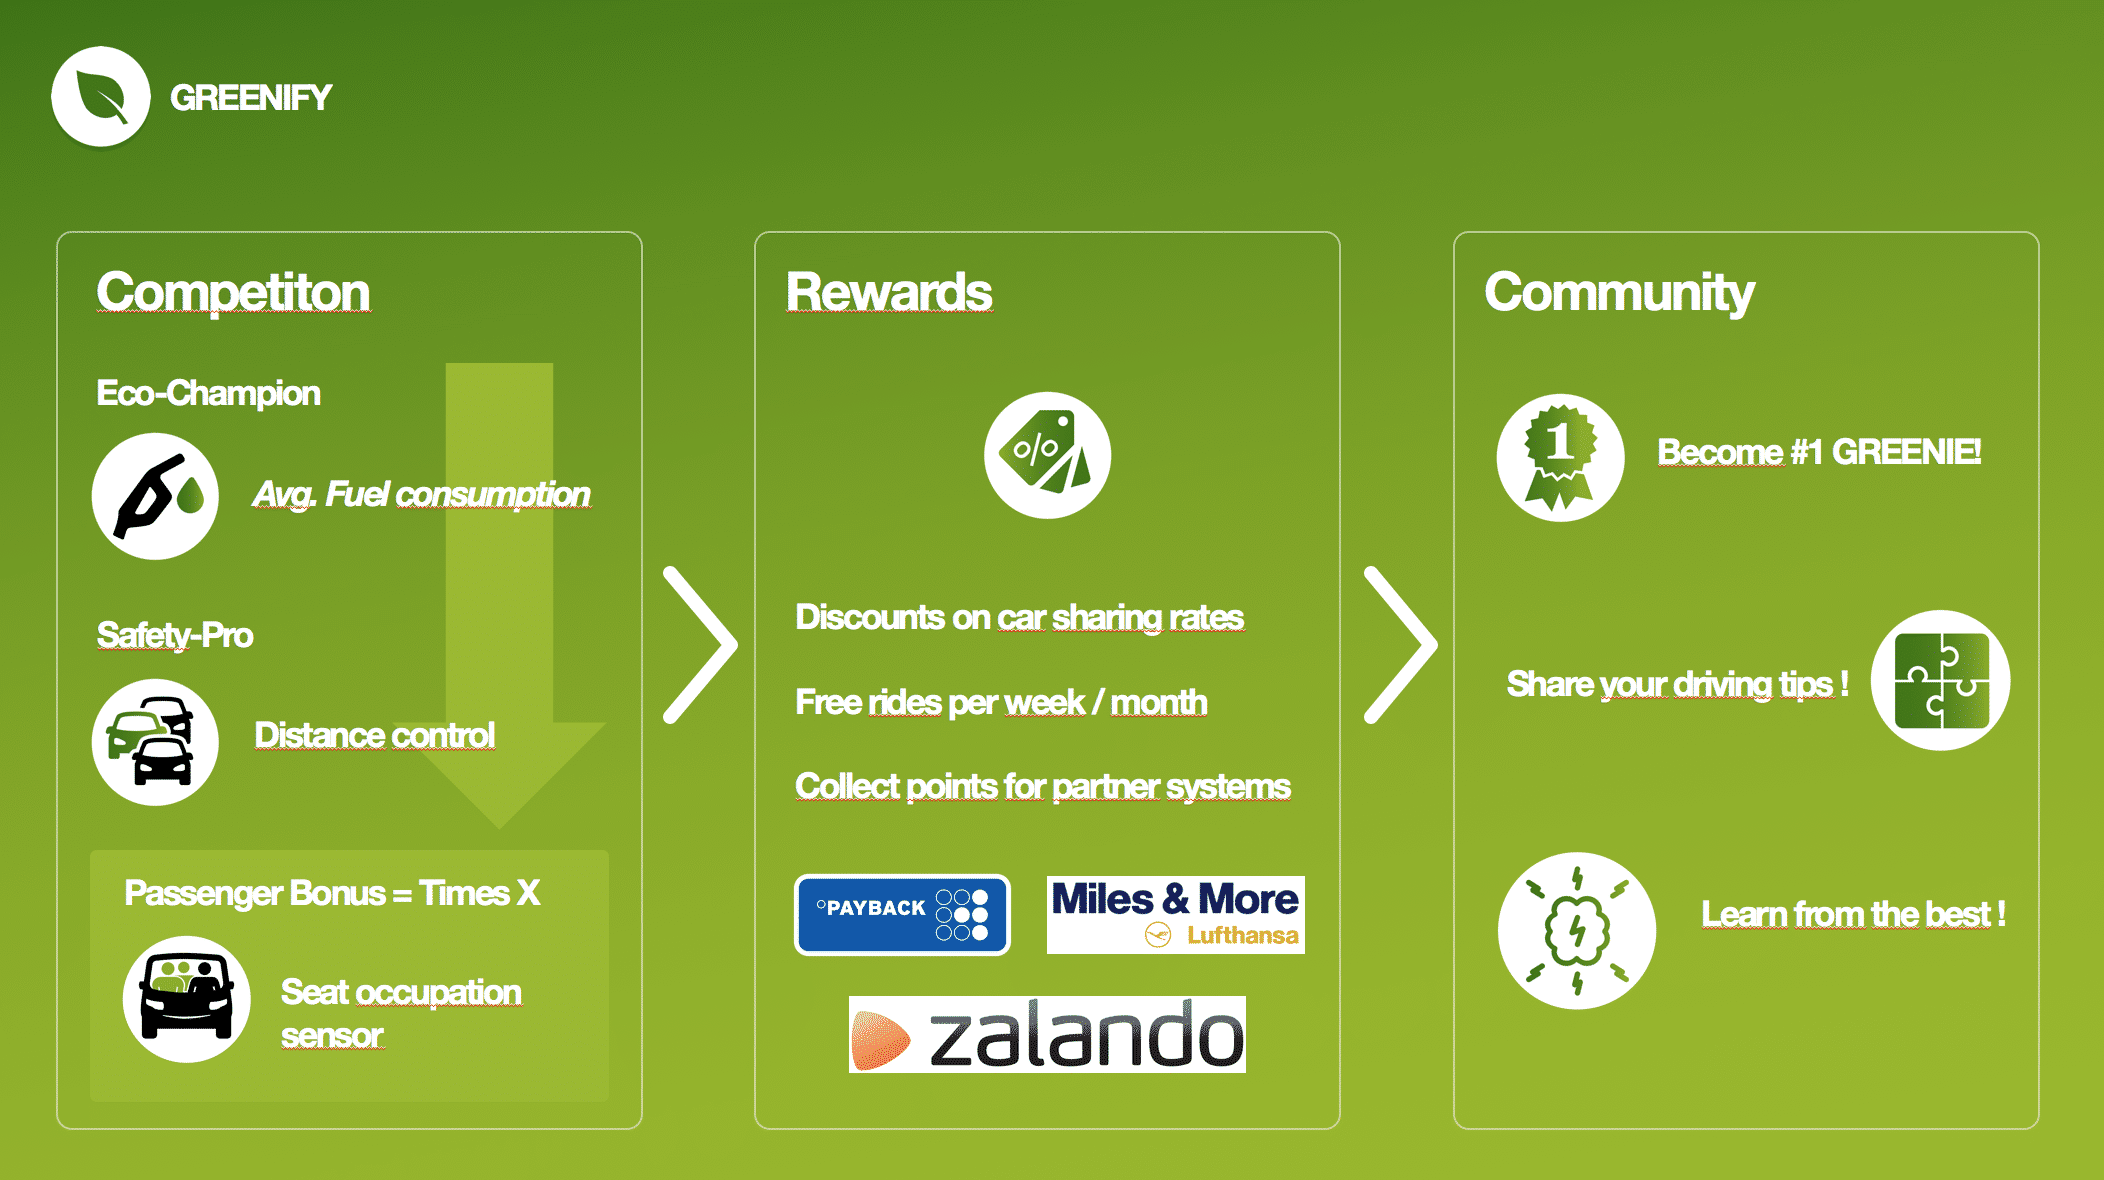 greenify competition rewards community